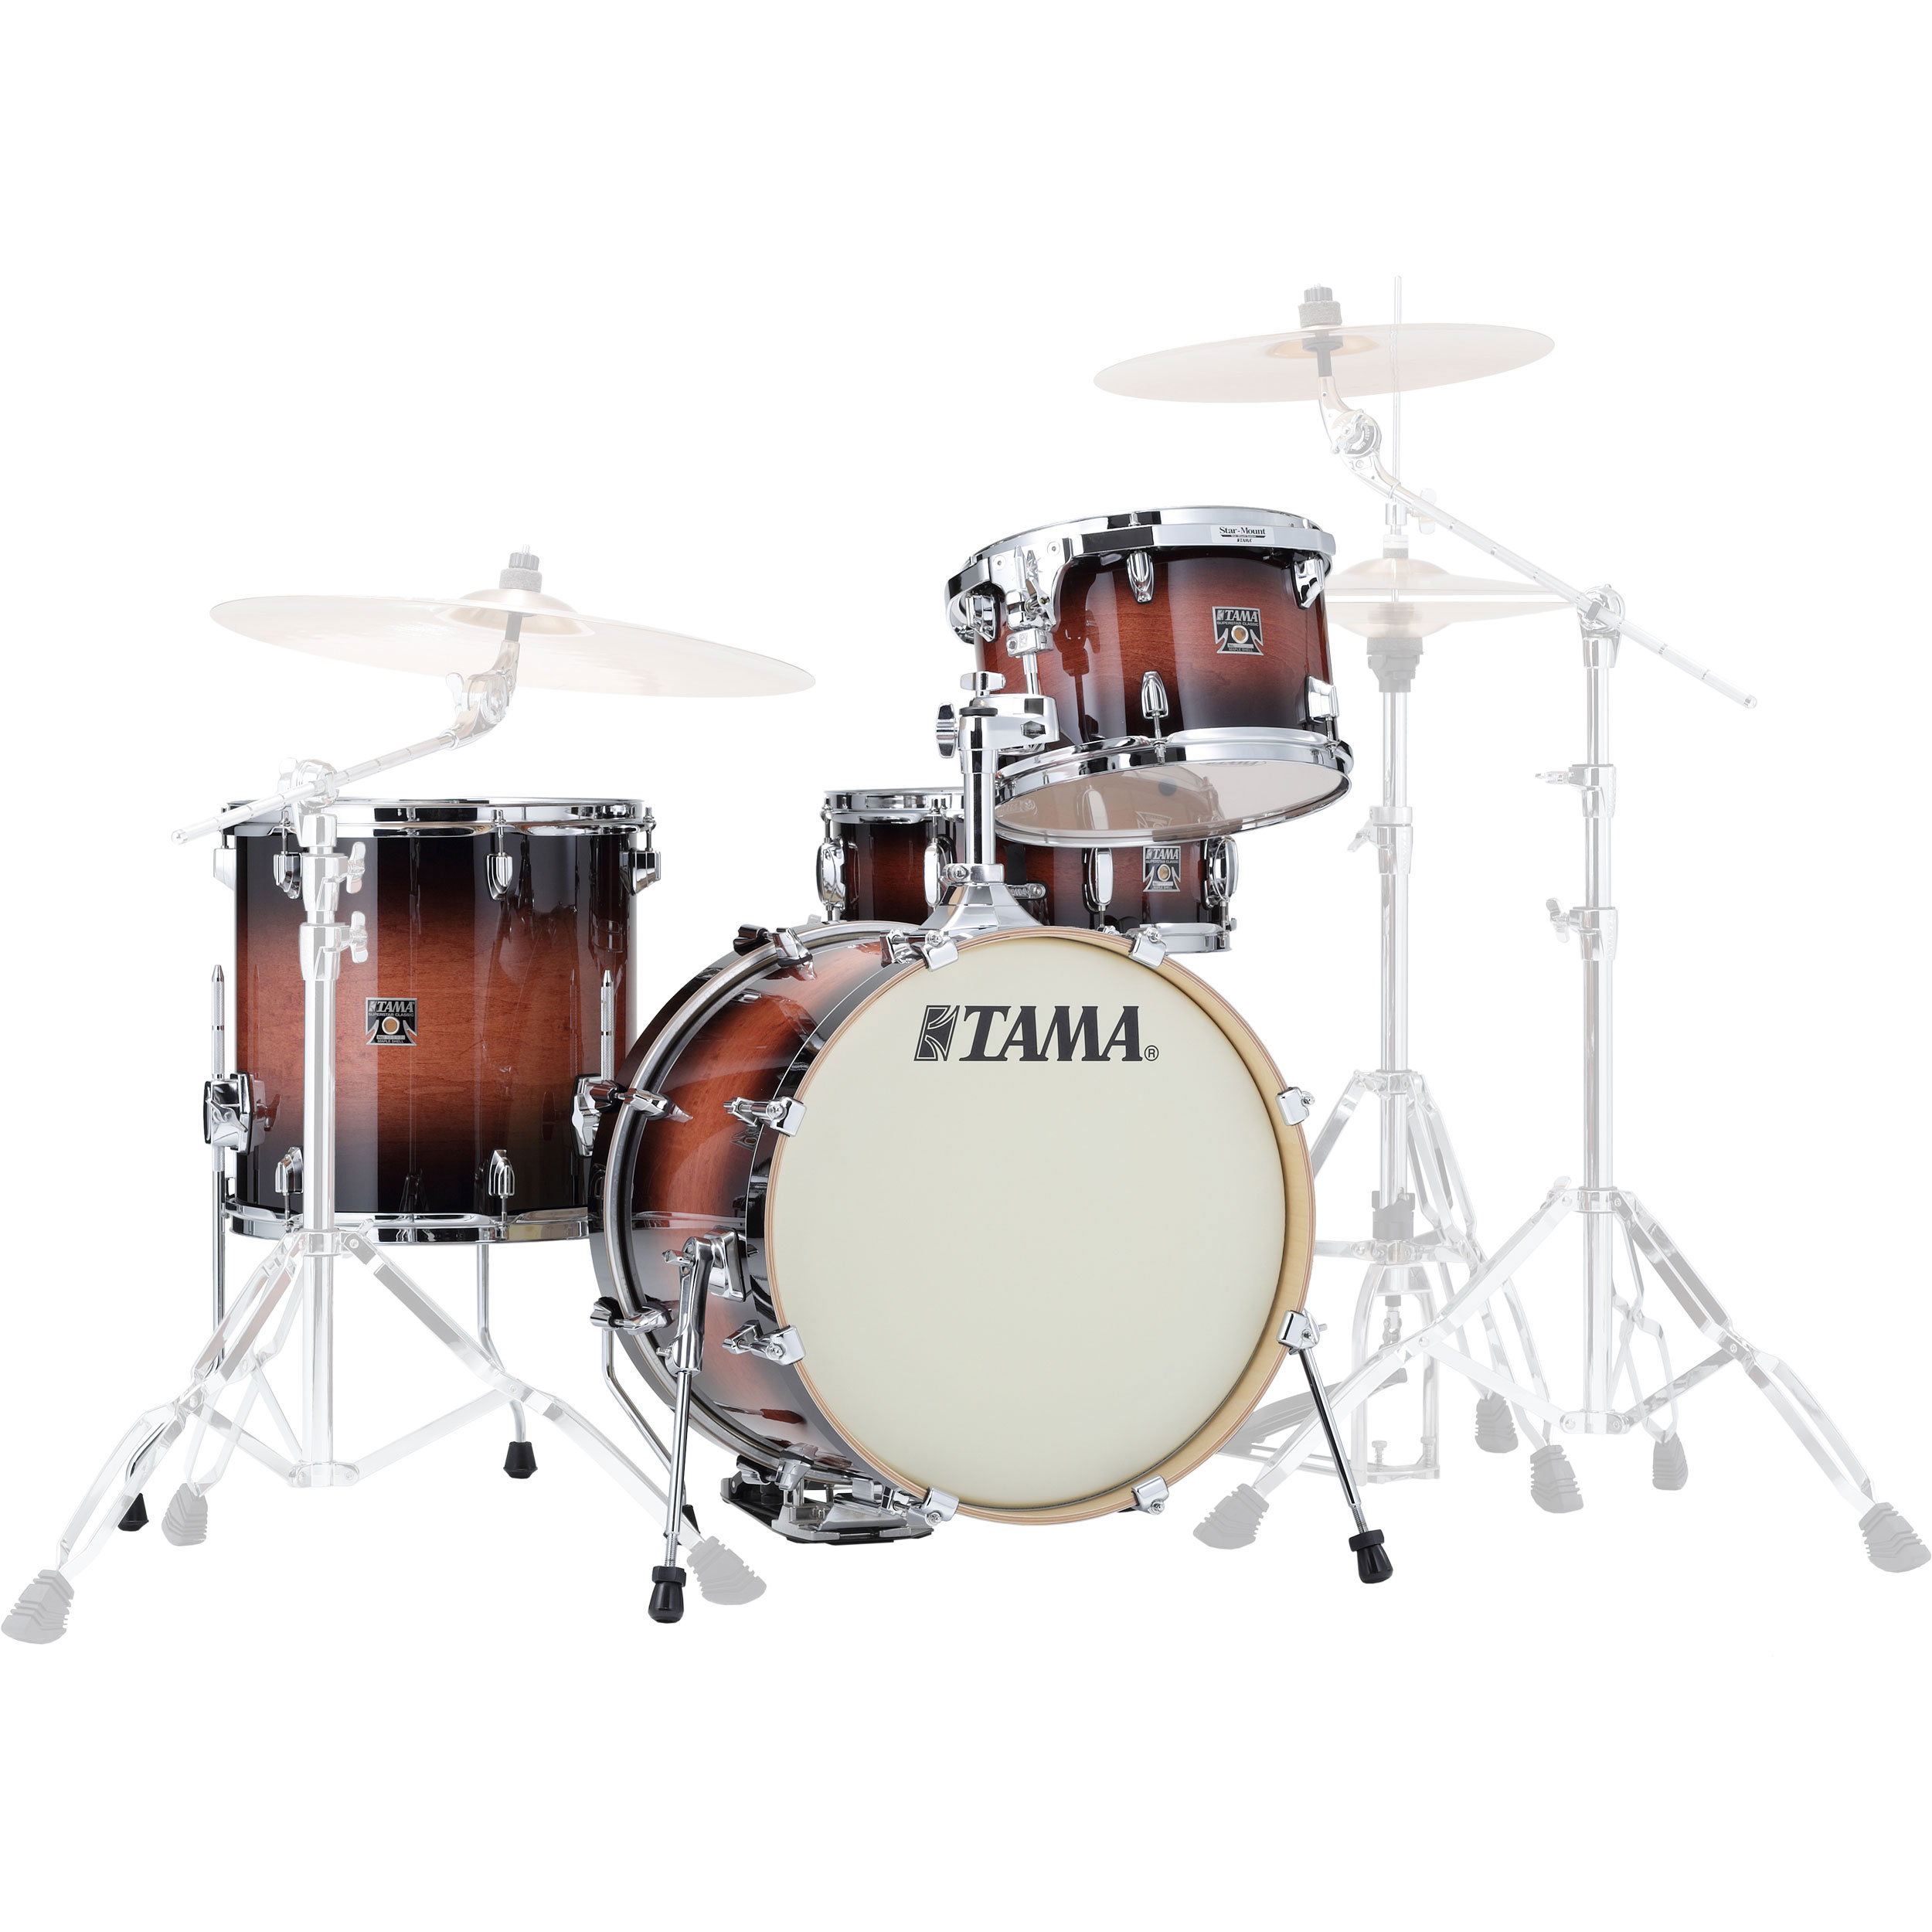 "Tama Superstar Classic ""Jazz Kit"" 4-Piece Drum Set Shell Pack (18"" Bass, 12/14"" Toms, 14"" Snare) in Lacquer Finish"